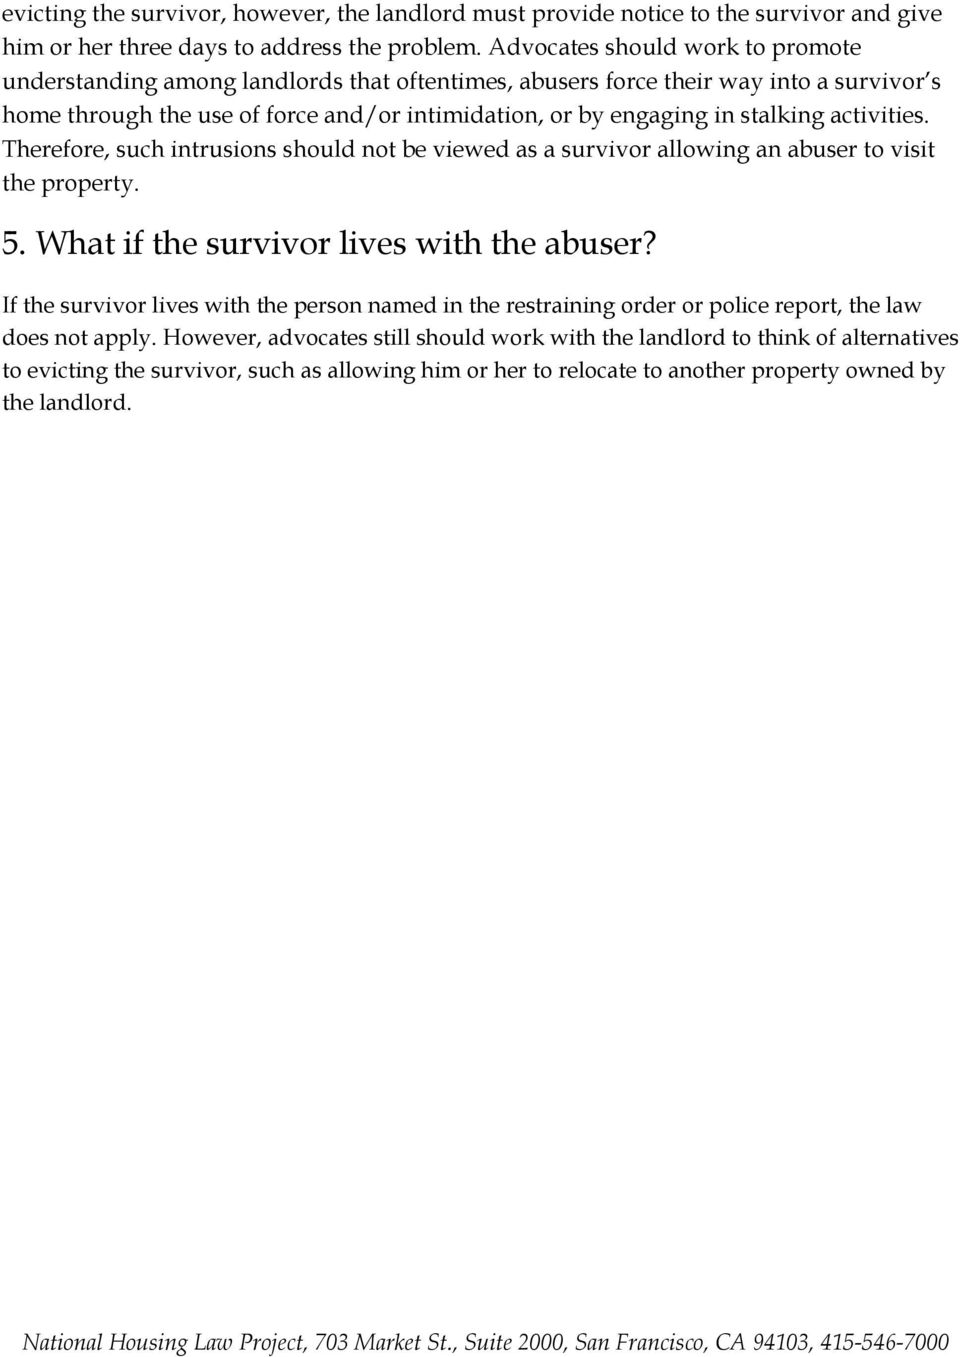 activities. Therefore, such intrusions should not be viewed as a survivor allowing an abuser to visit the property. 5. What if the survivor lives with the abuser?